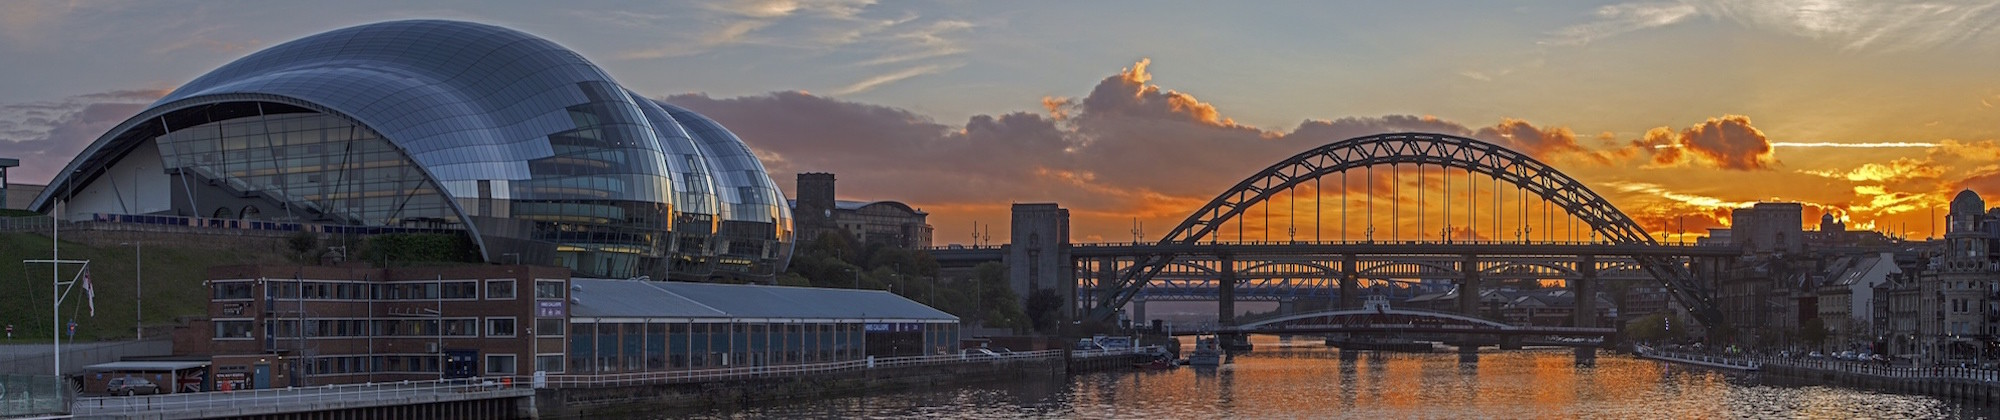 Sun setting behind the Tyne Bridge Newcastle upon Tyne